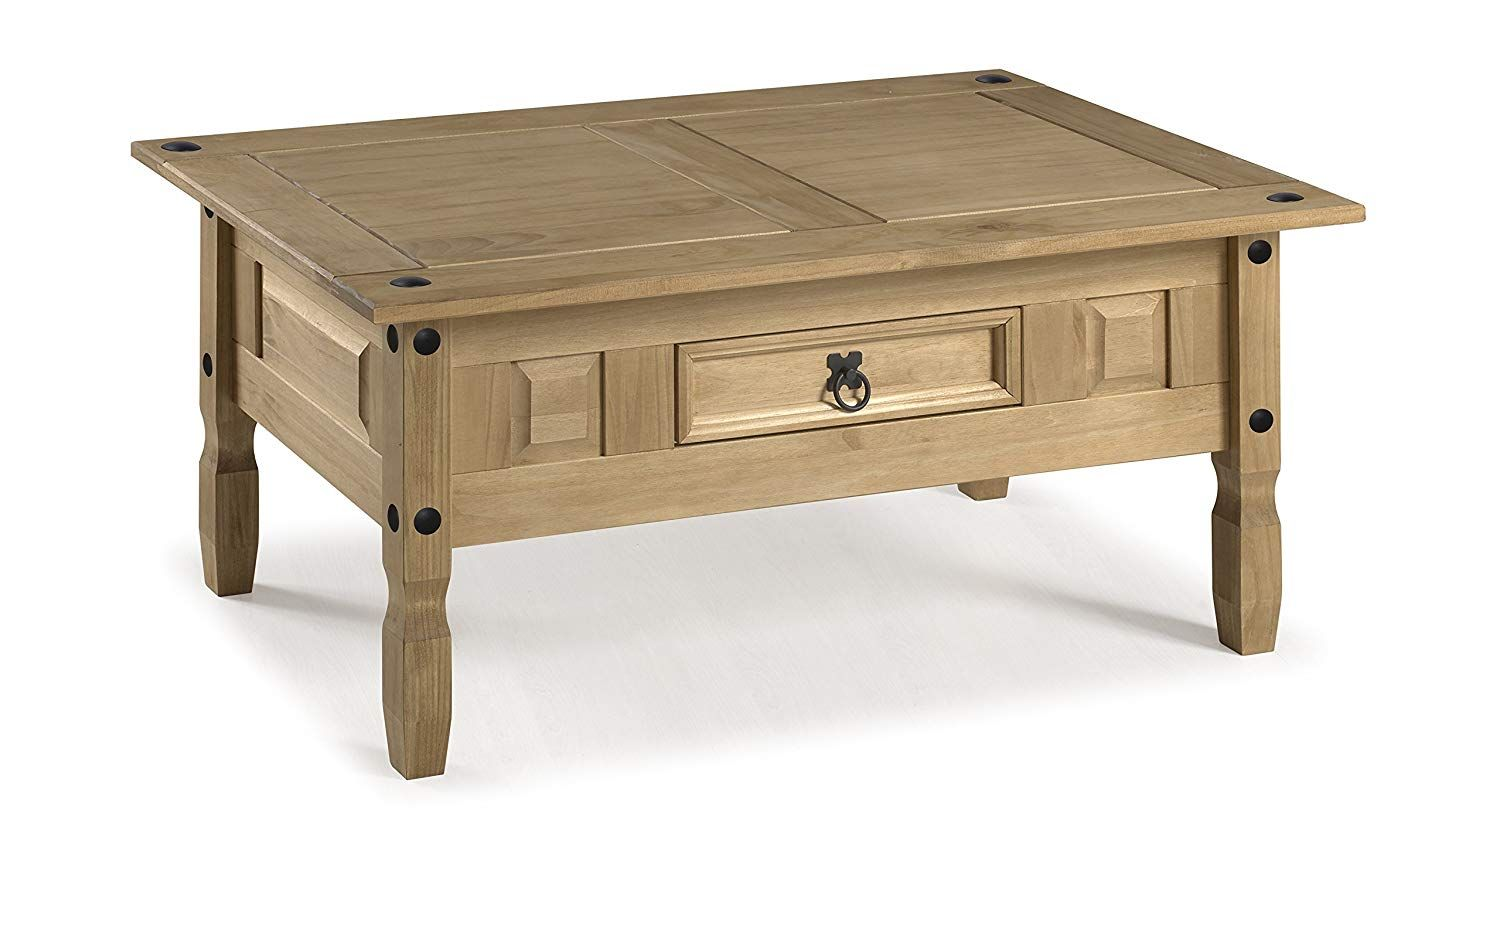 Wedding List Home Accessories All Bloggers Den Best Products Corona Coffee Table Coffee Table With Storage